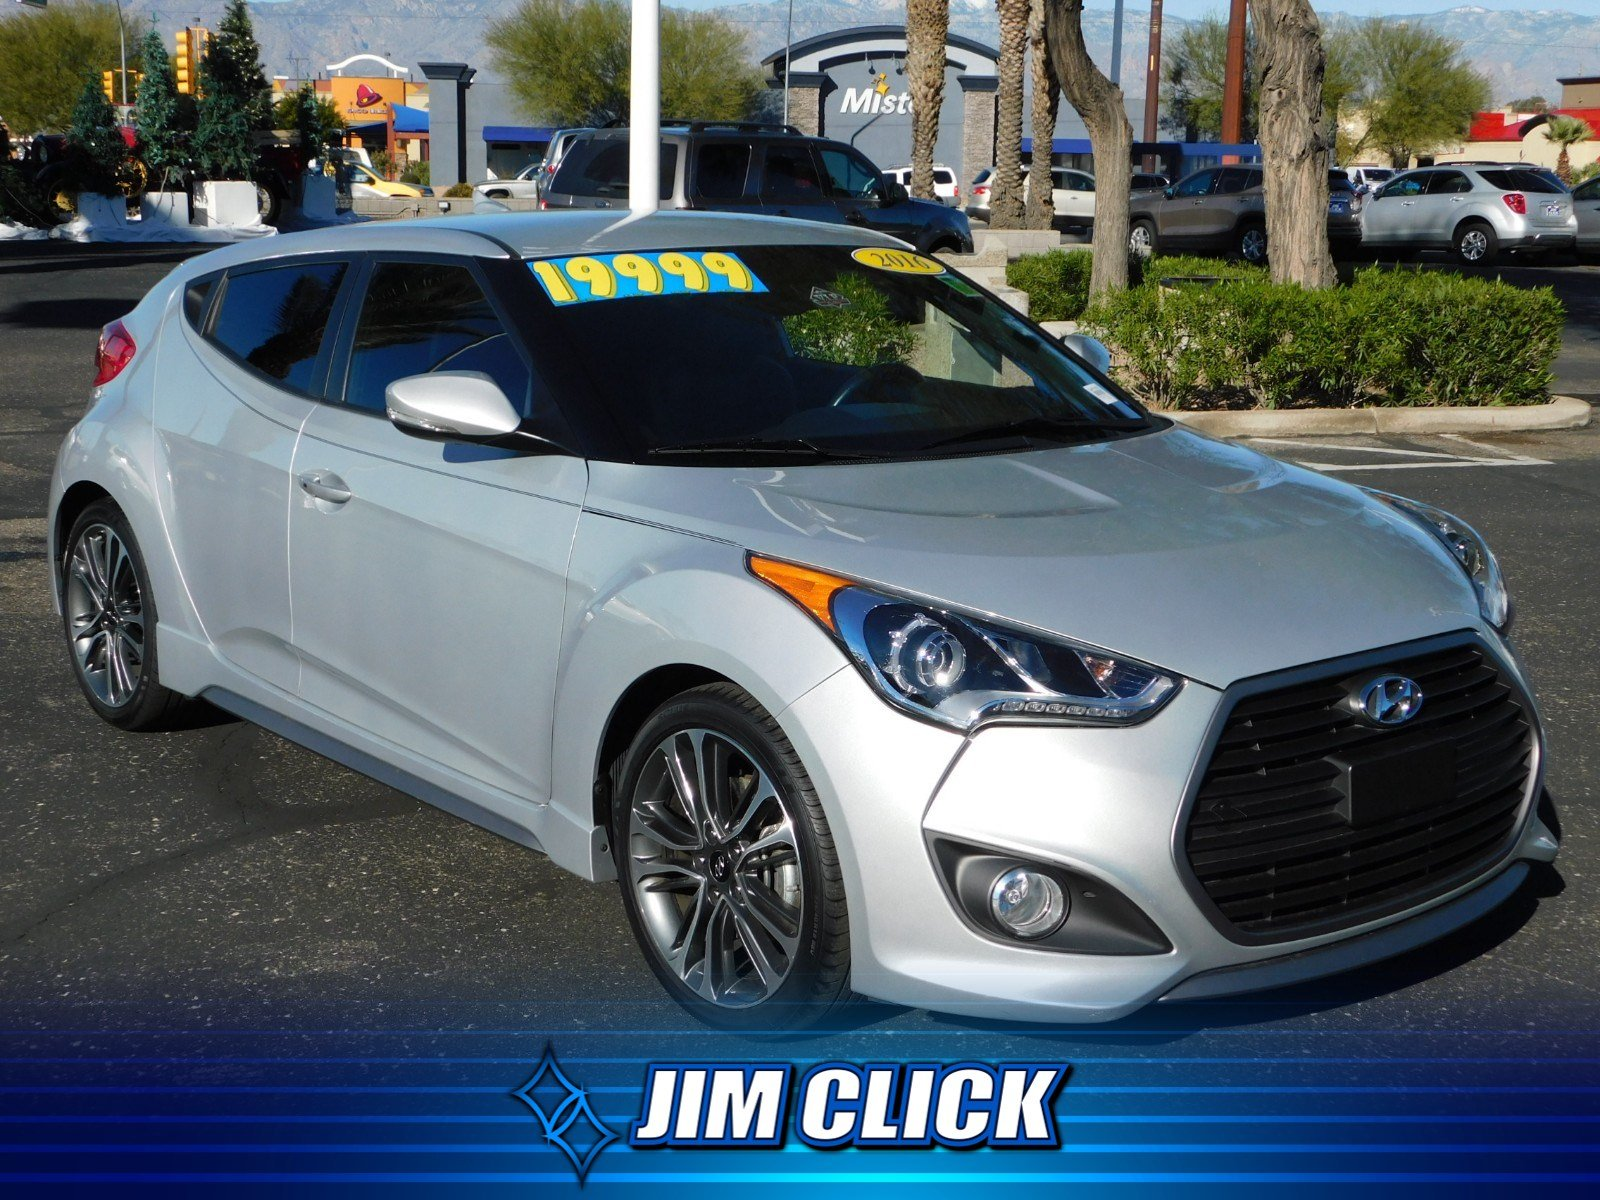 Jim Click Hyundai Eastside Featured Used Cars Vehicles And Used